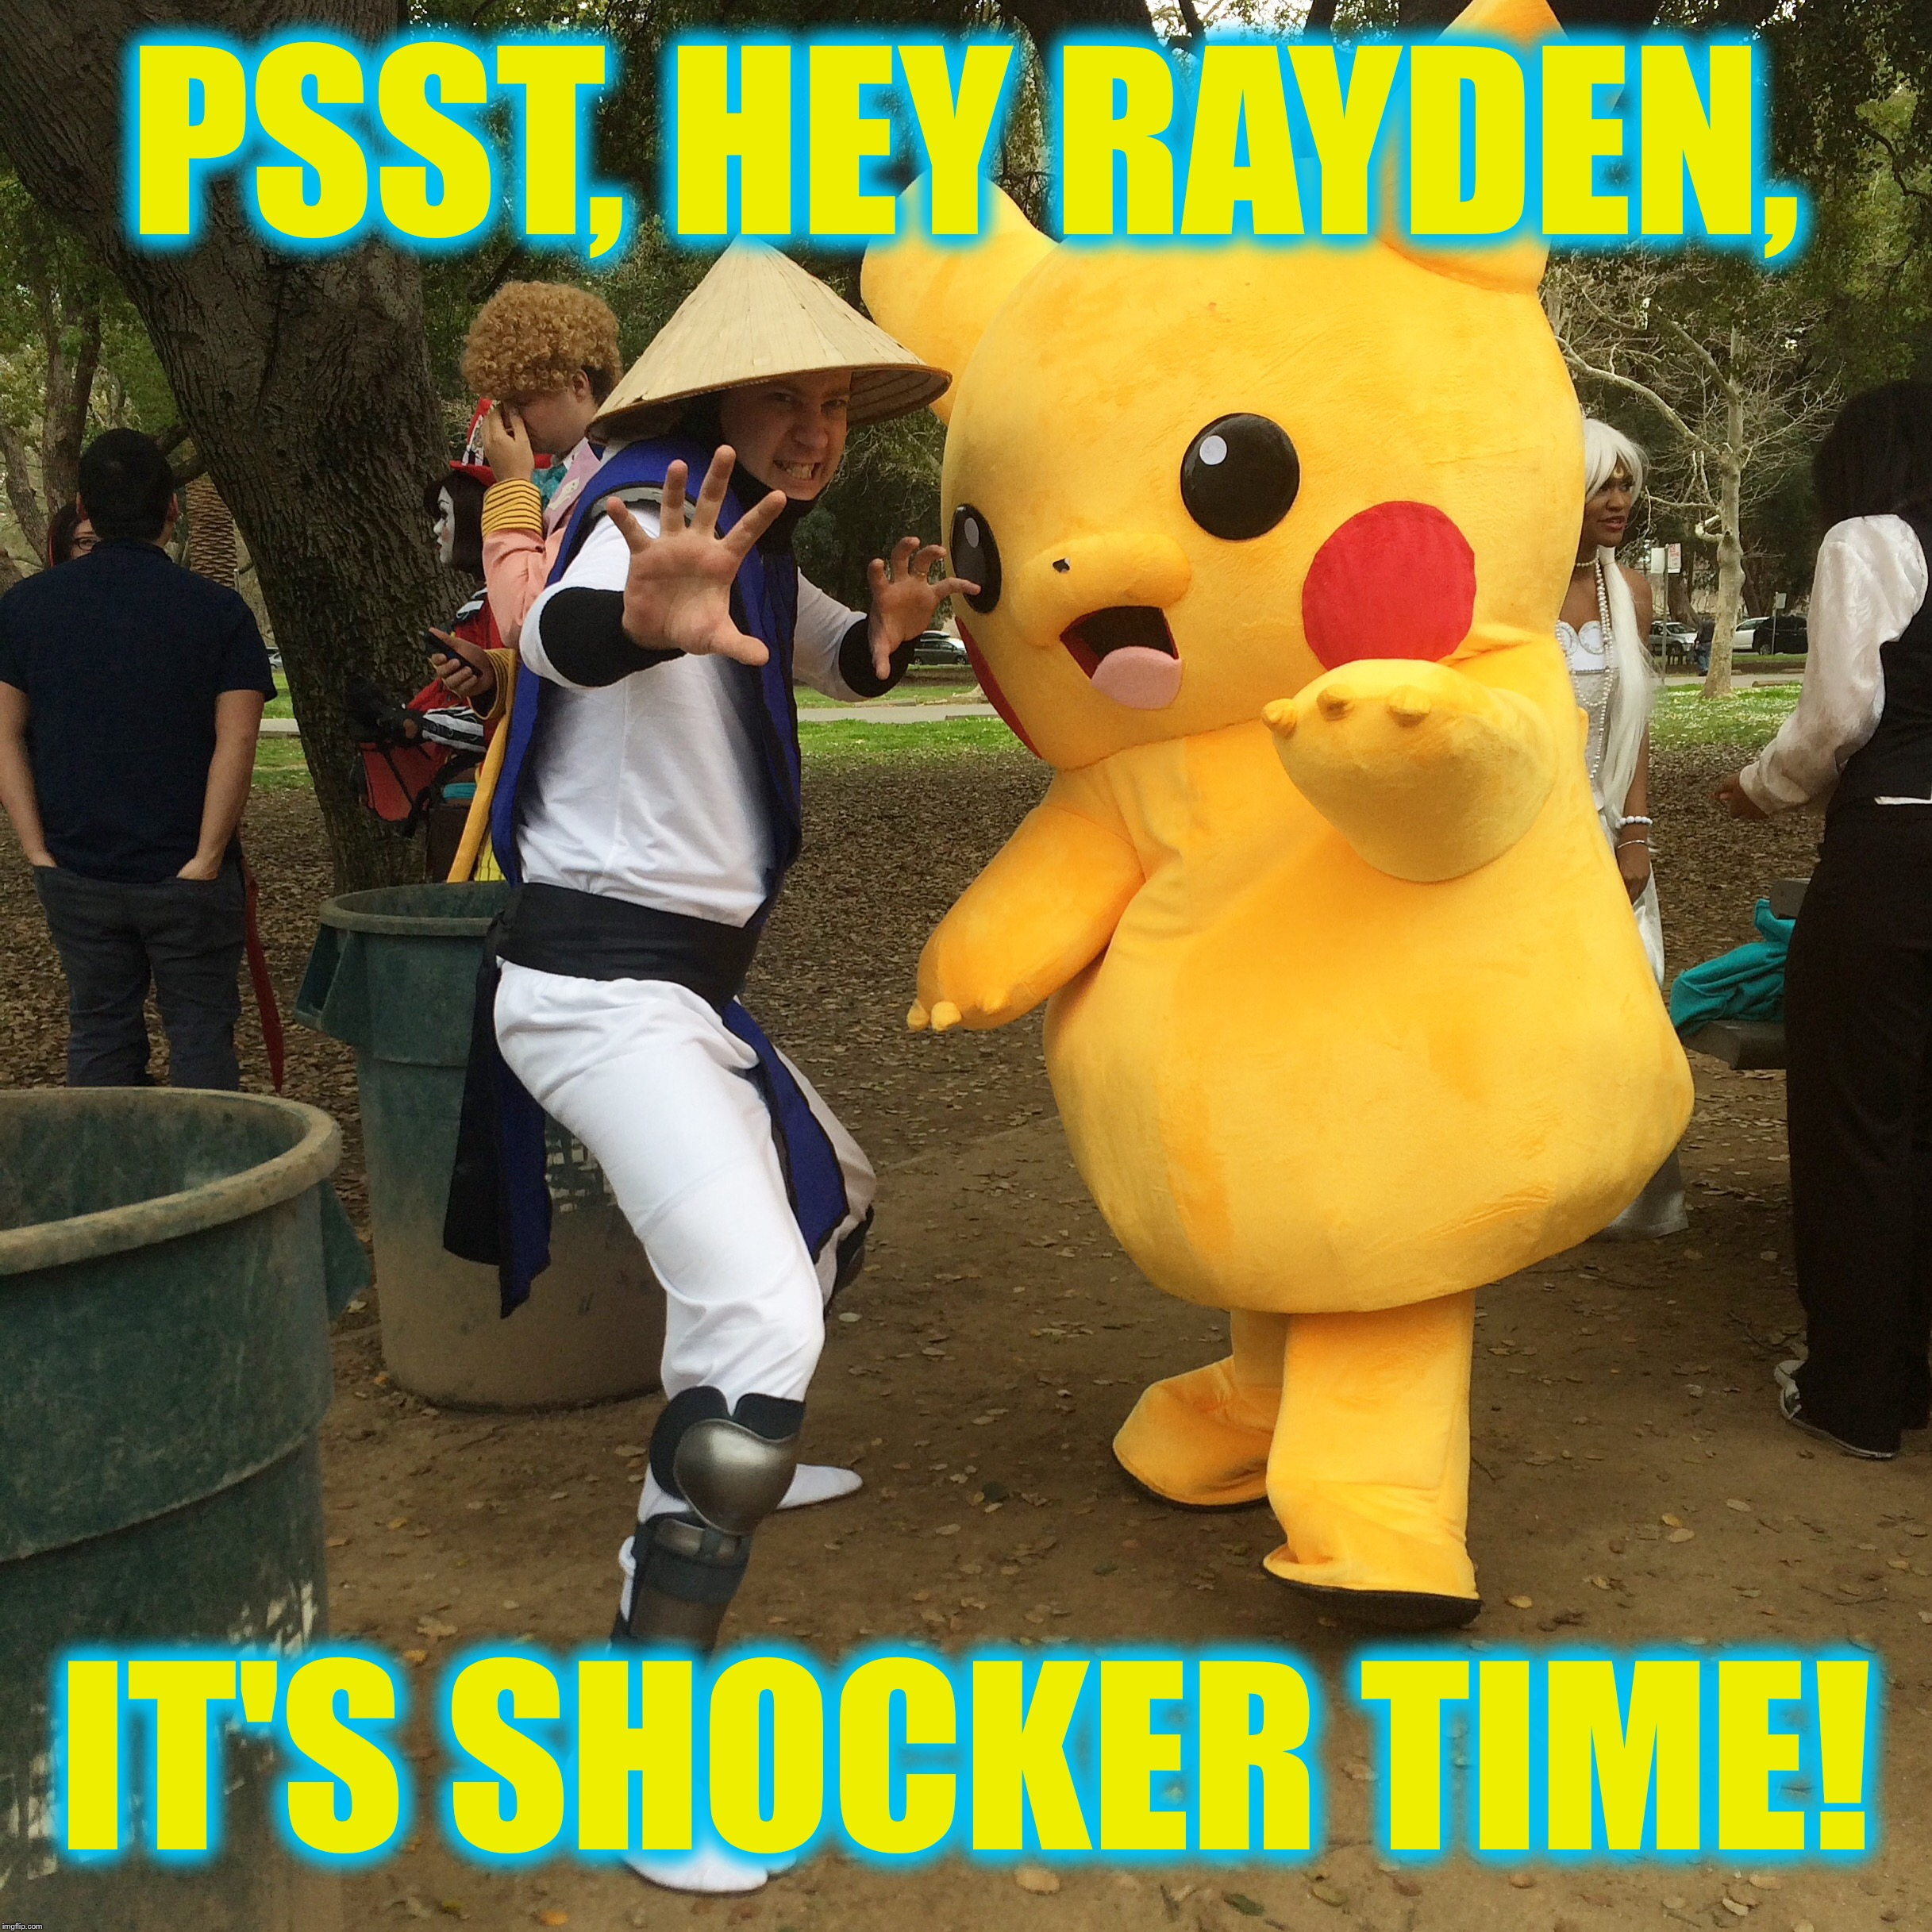 The shocker  |  PSST, HEY RAYDEN, IT'S SHOCKER TIME! | image tagged in pokemon,mortal kombat | made w/ Imgflip meme maker